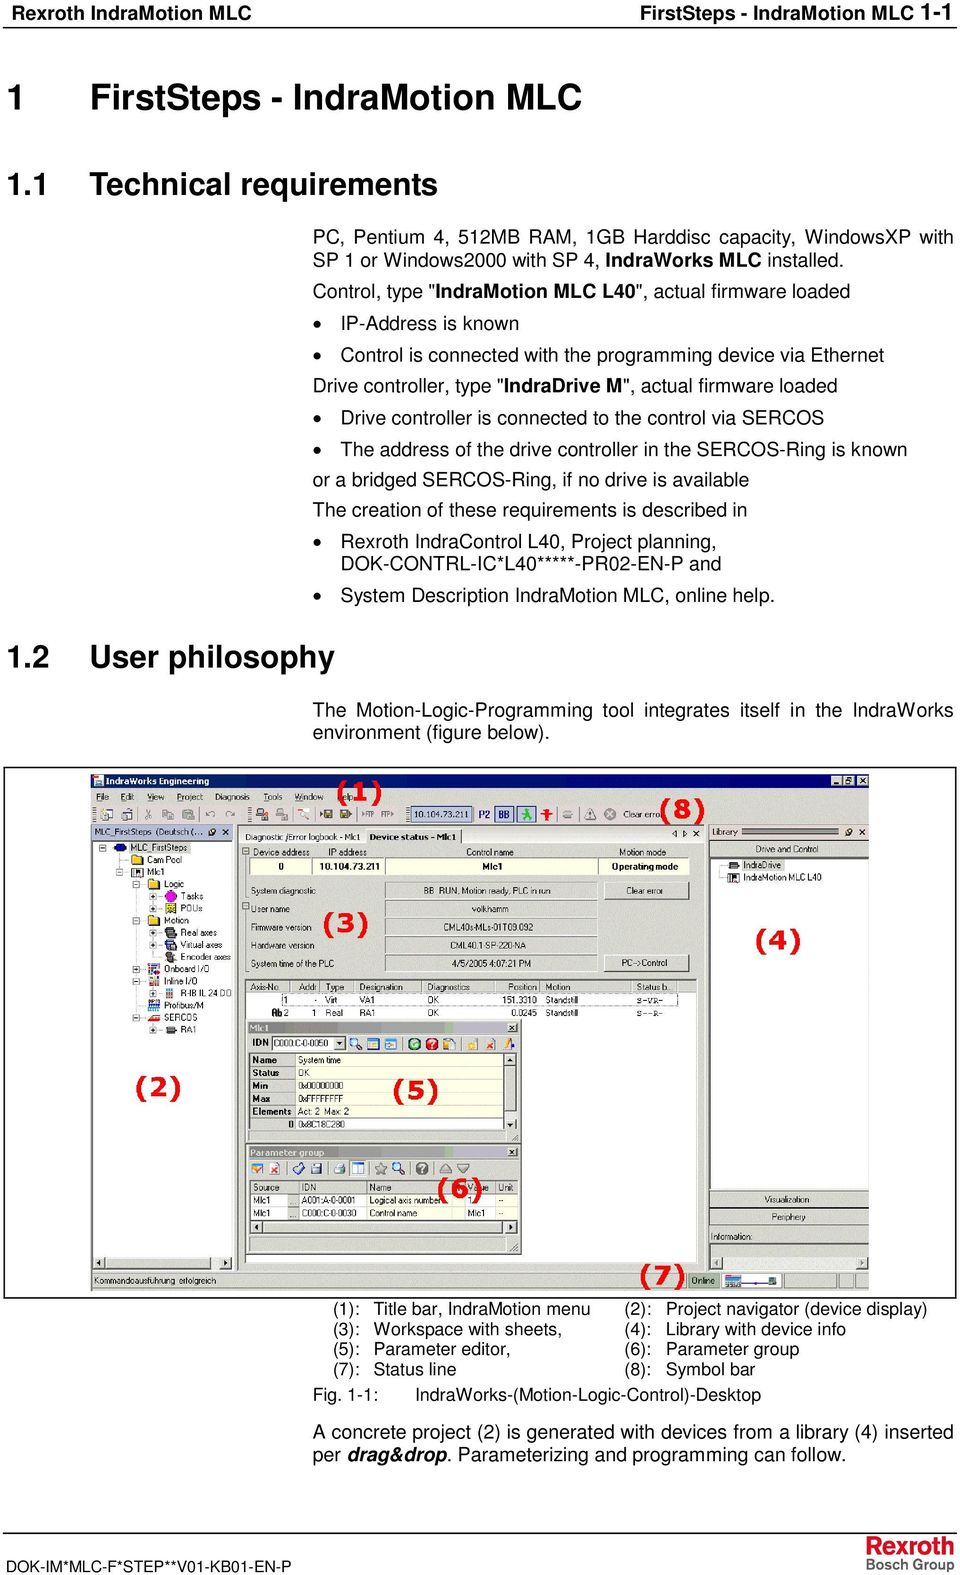 Rexroth Indramotion Mlc First Steps Training Manual Pdf Light Controller Wiring Diagram Control Type L40 Actual Firmware Loaded Ip Address Is